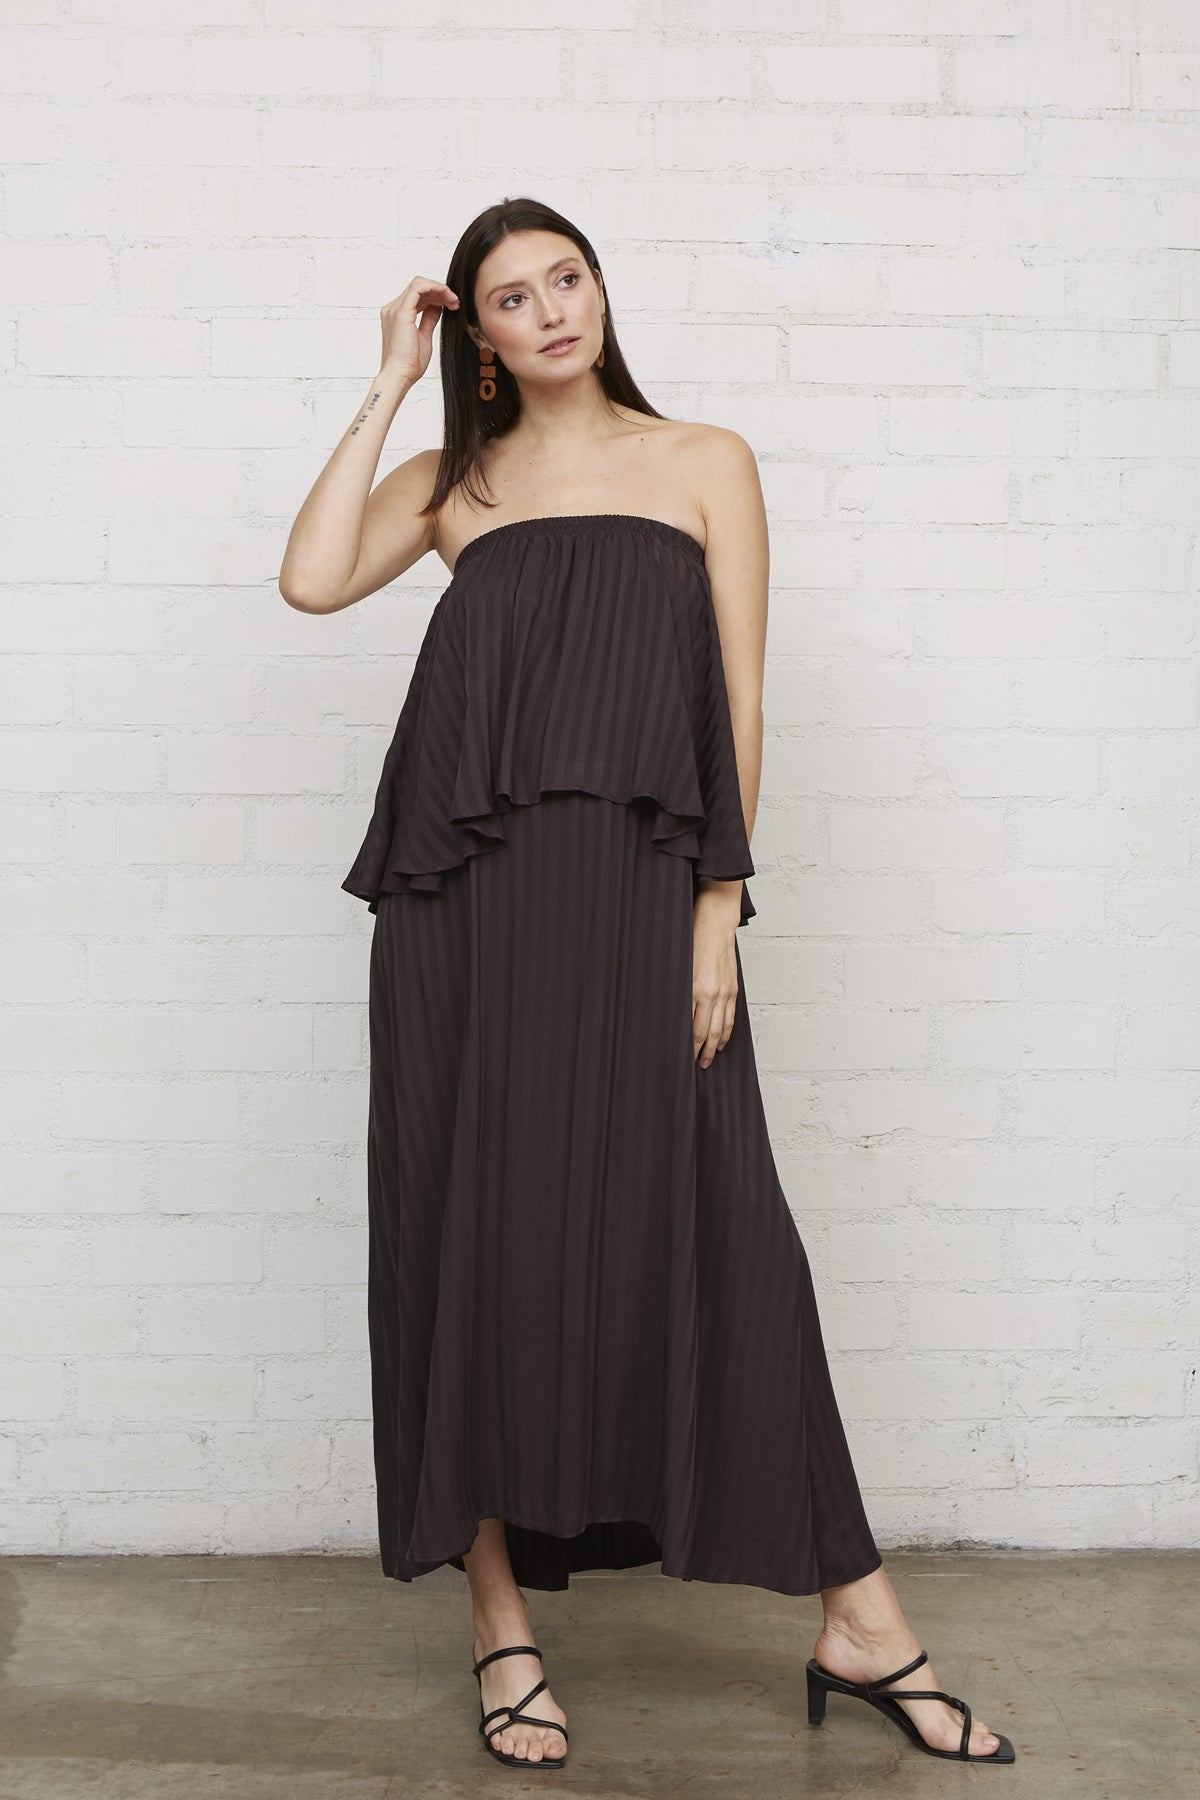 Shadow Stripe Polly Dress - Faded Black, Maternity